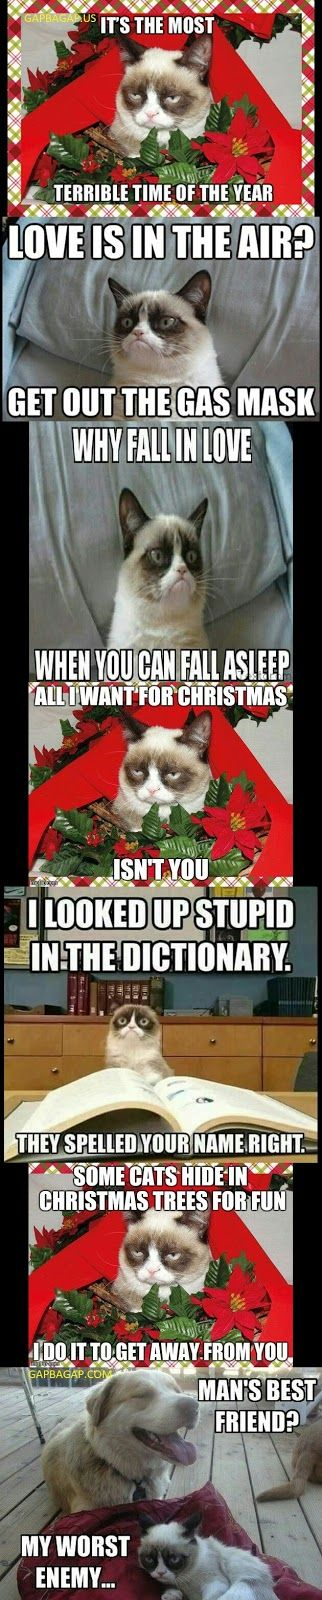 7 Funny Grumpy Cat Memes Collection From Around The World